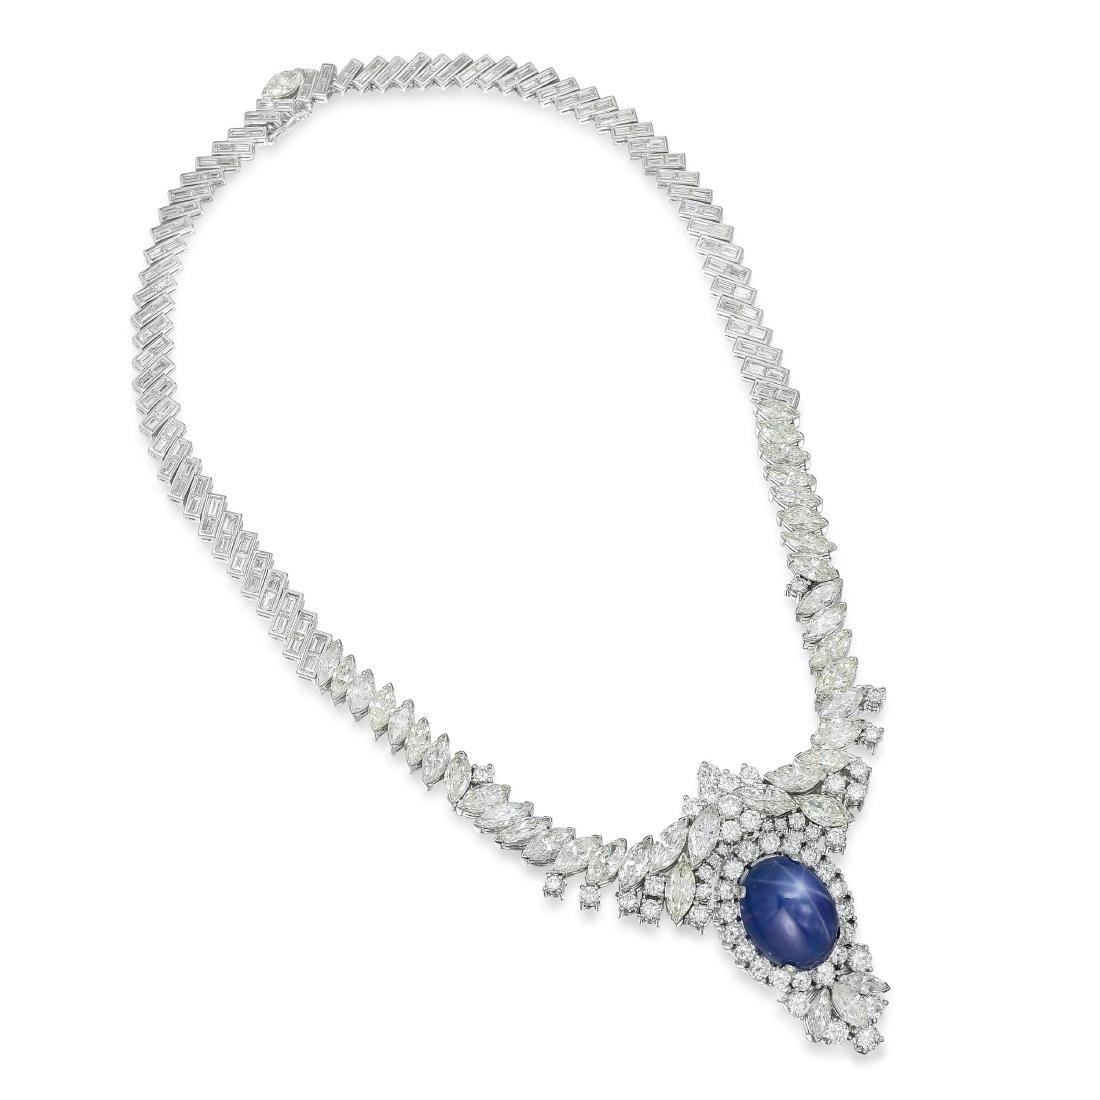 A Star Sapphire and Diamond Necklace and Earrings Set - 2